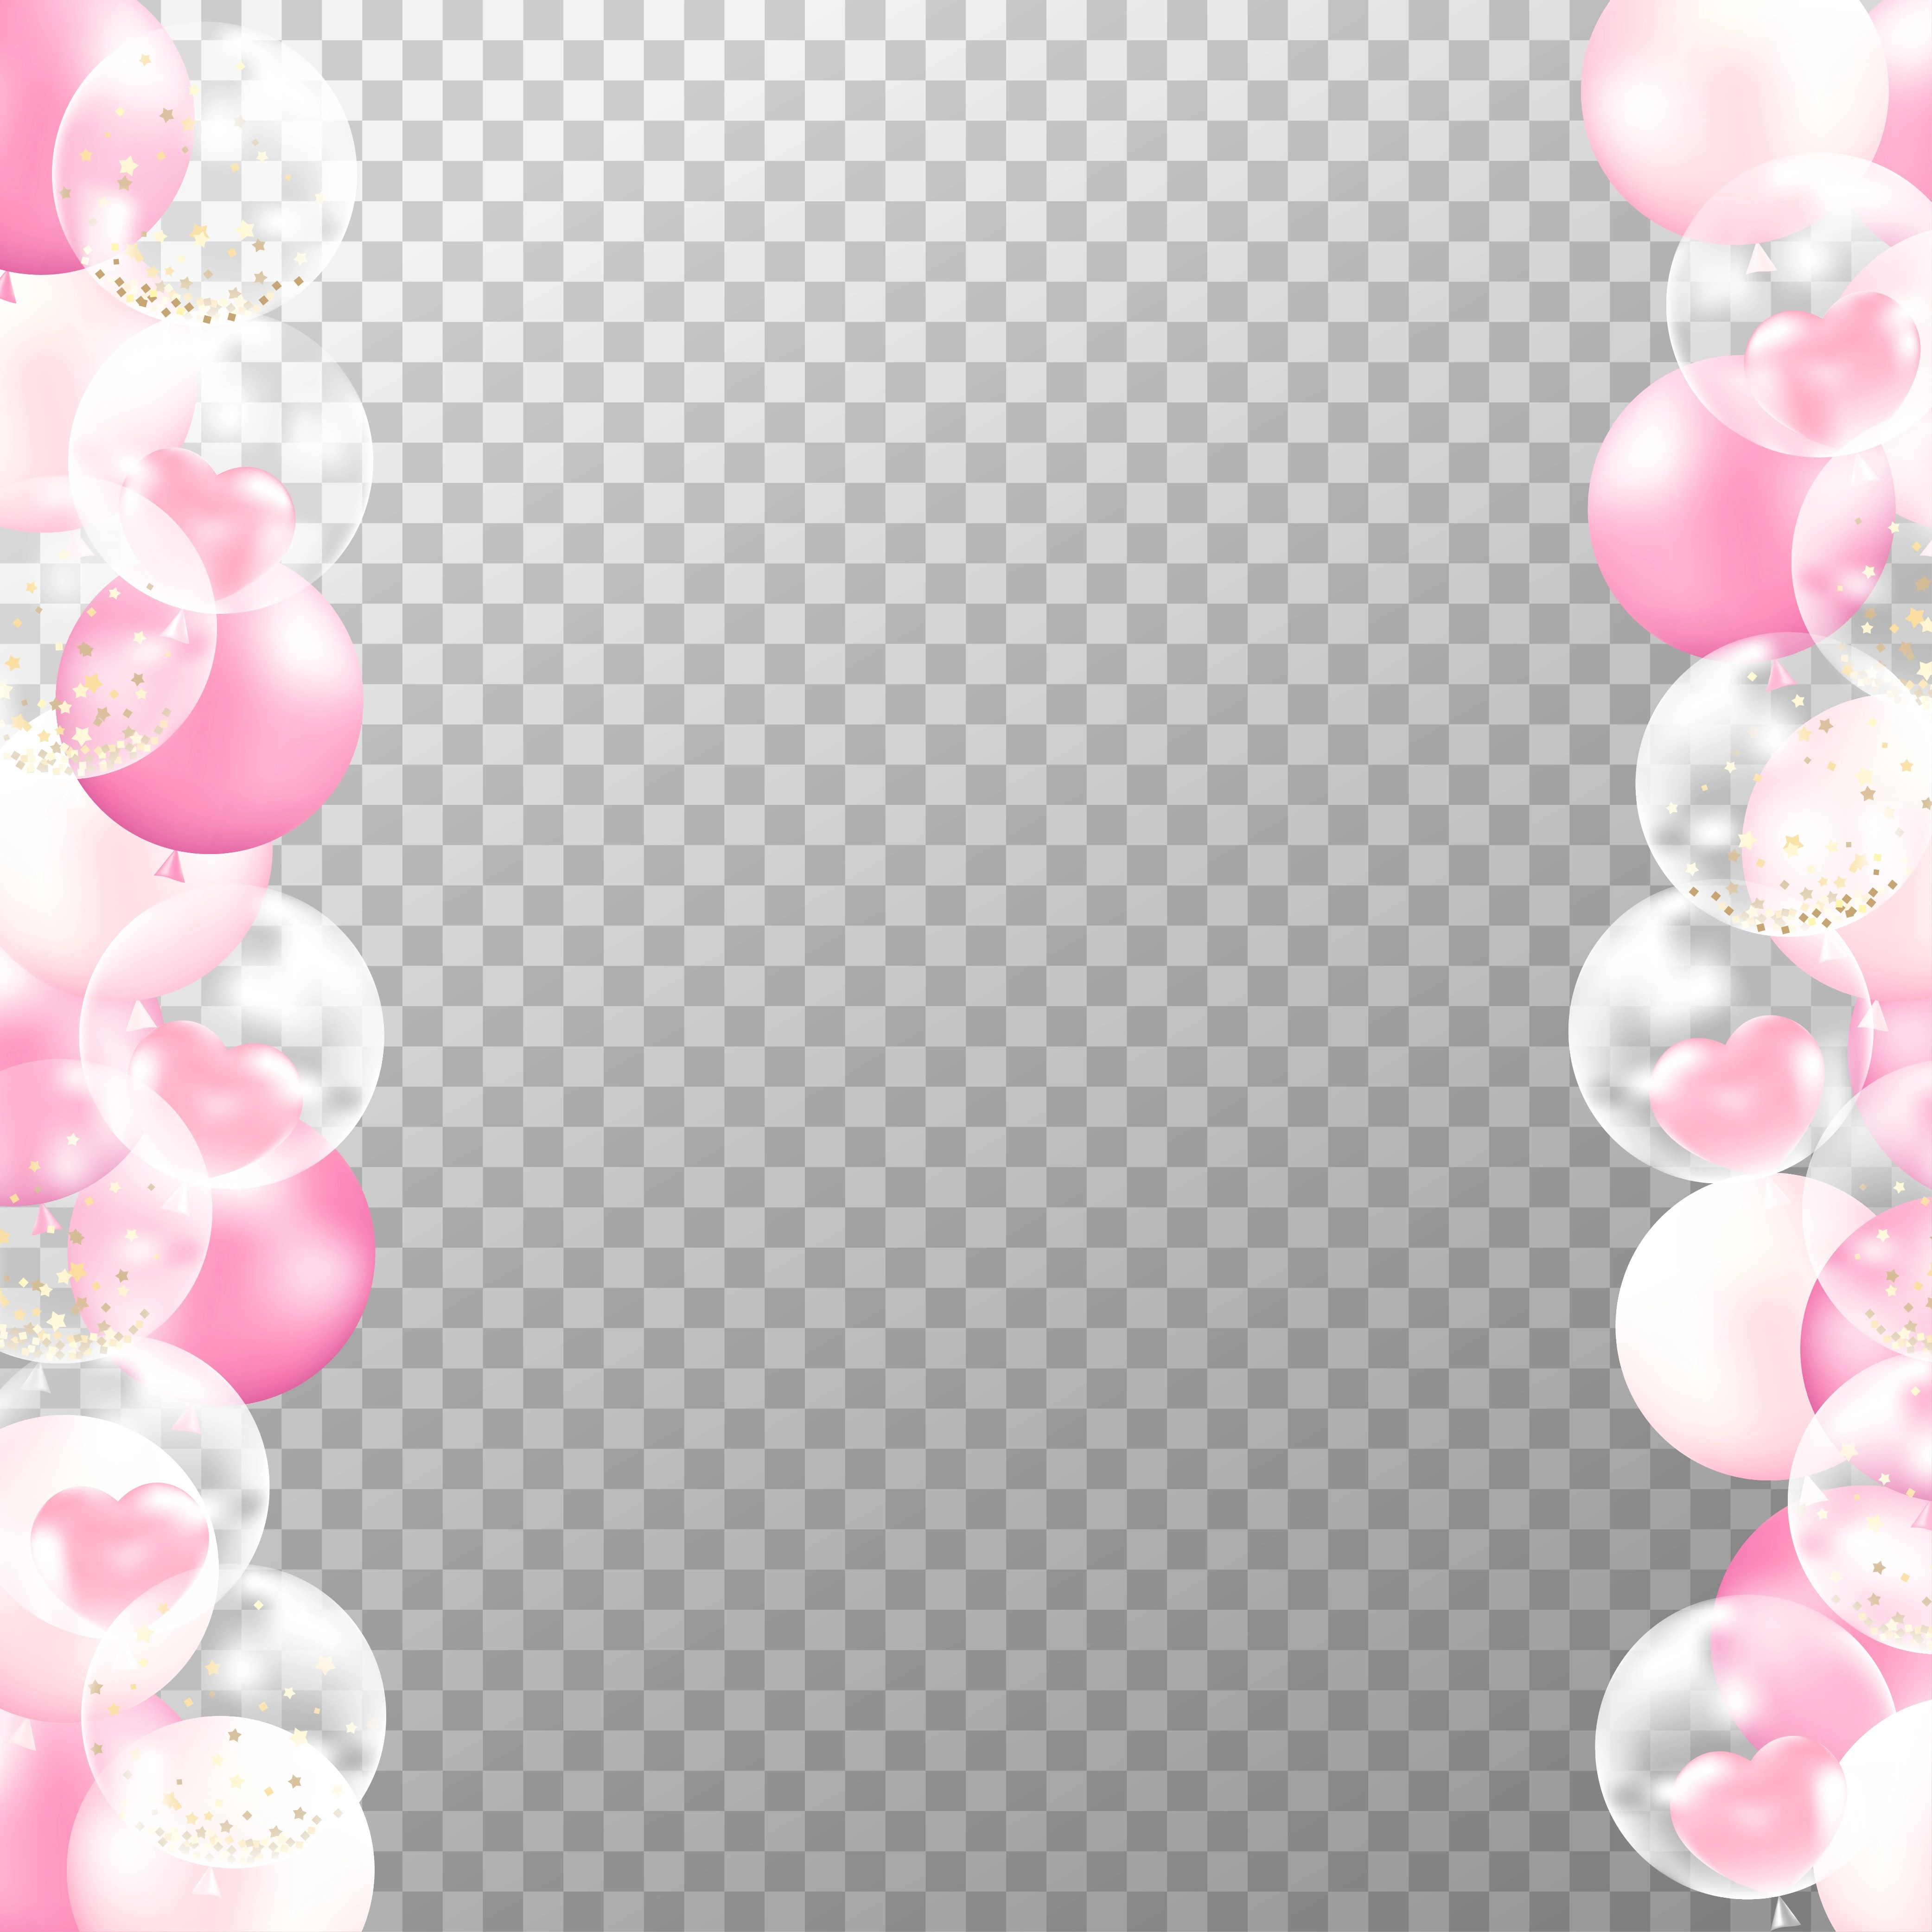 Realistic Balloons Frame With Transparent Background Pink And White Party Balloons Vector For